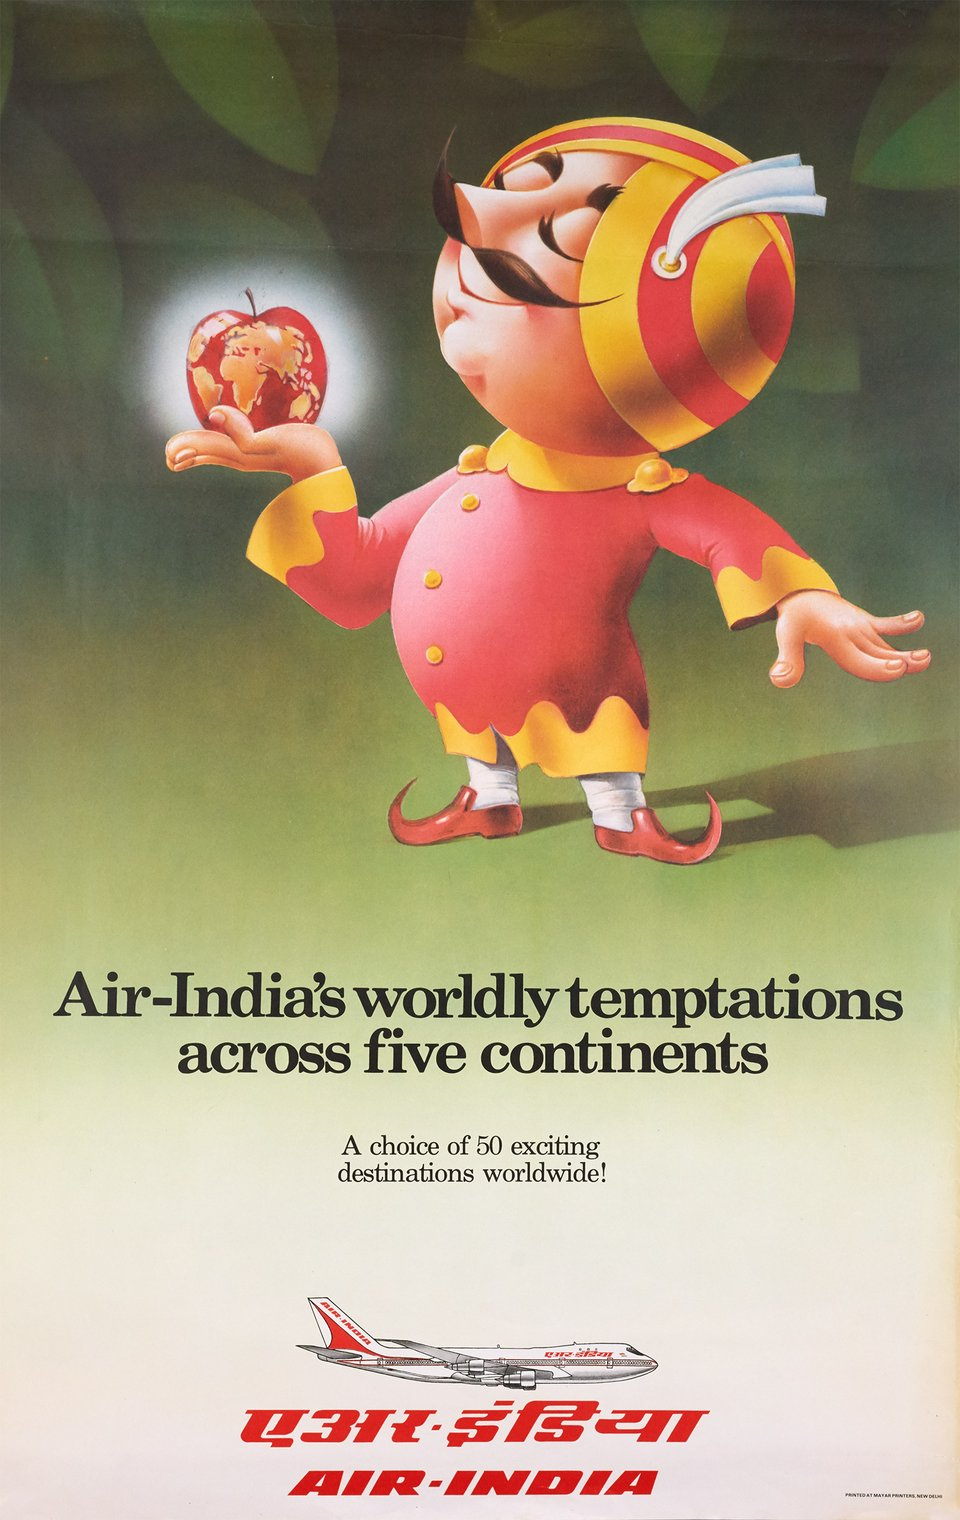 Air-India's Worldly Temptations across Five Continents – Affiche ancienne –  ANONYME – 1980